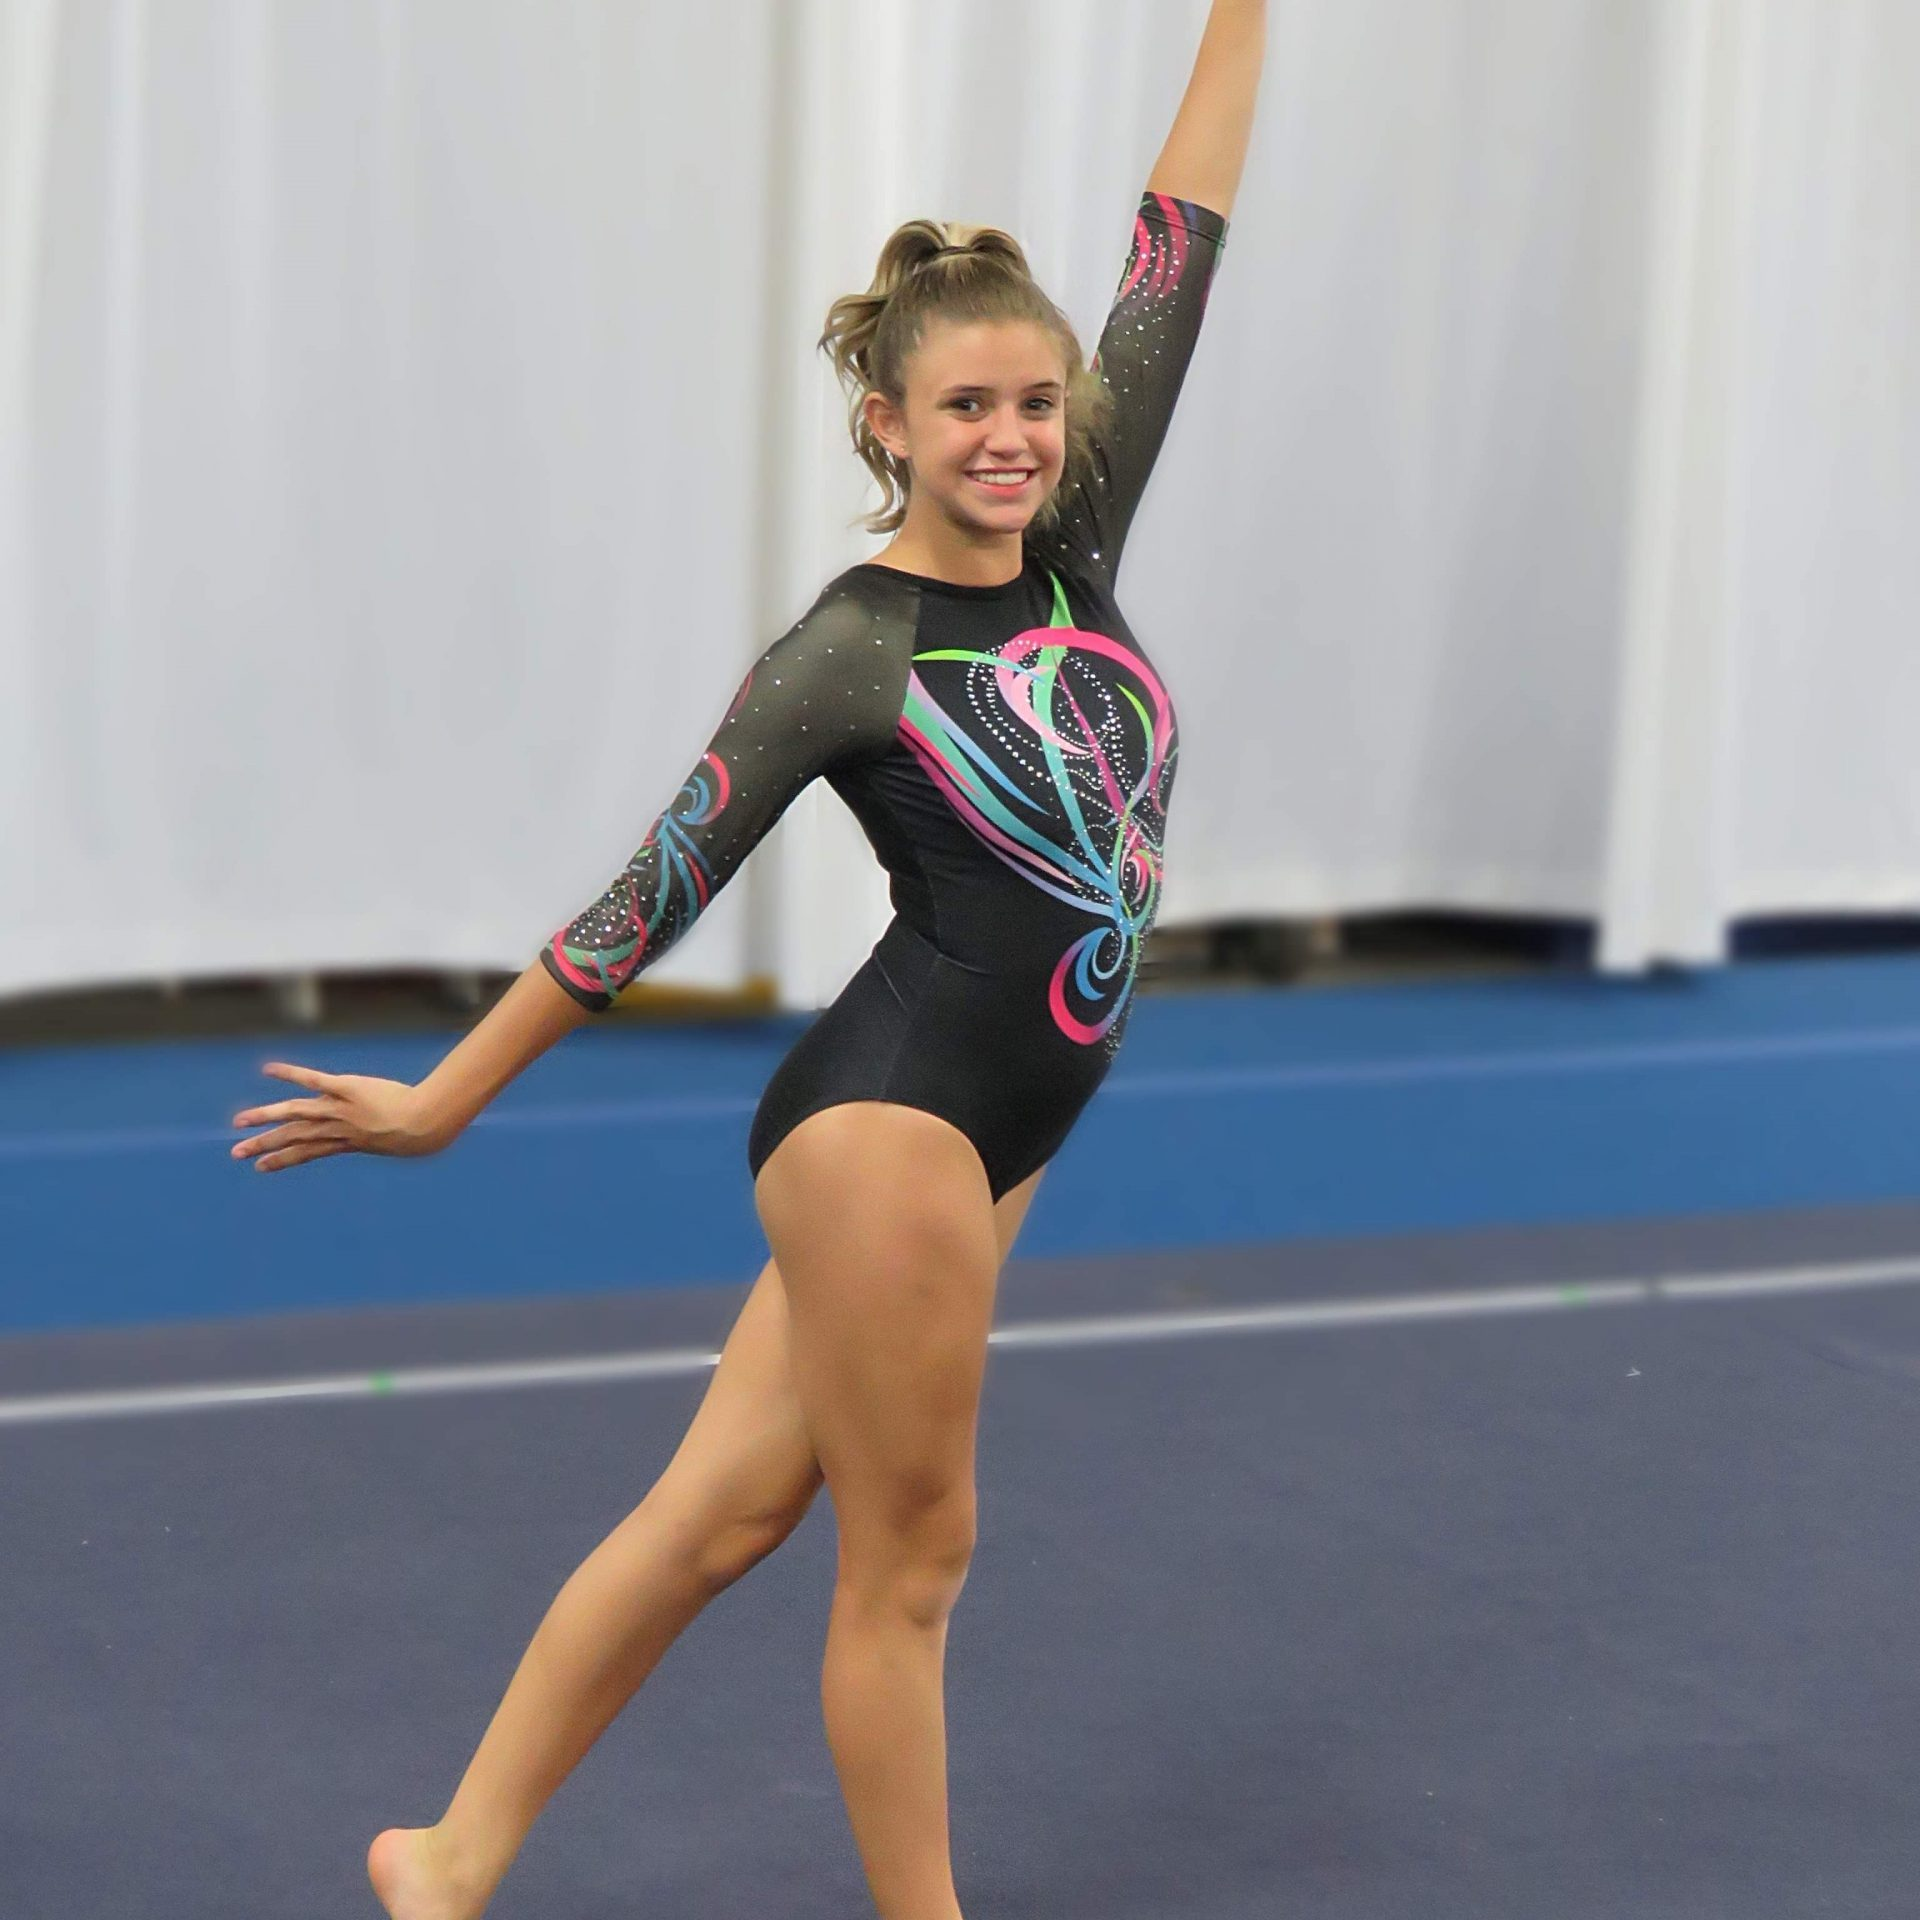 grand junction gymnast